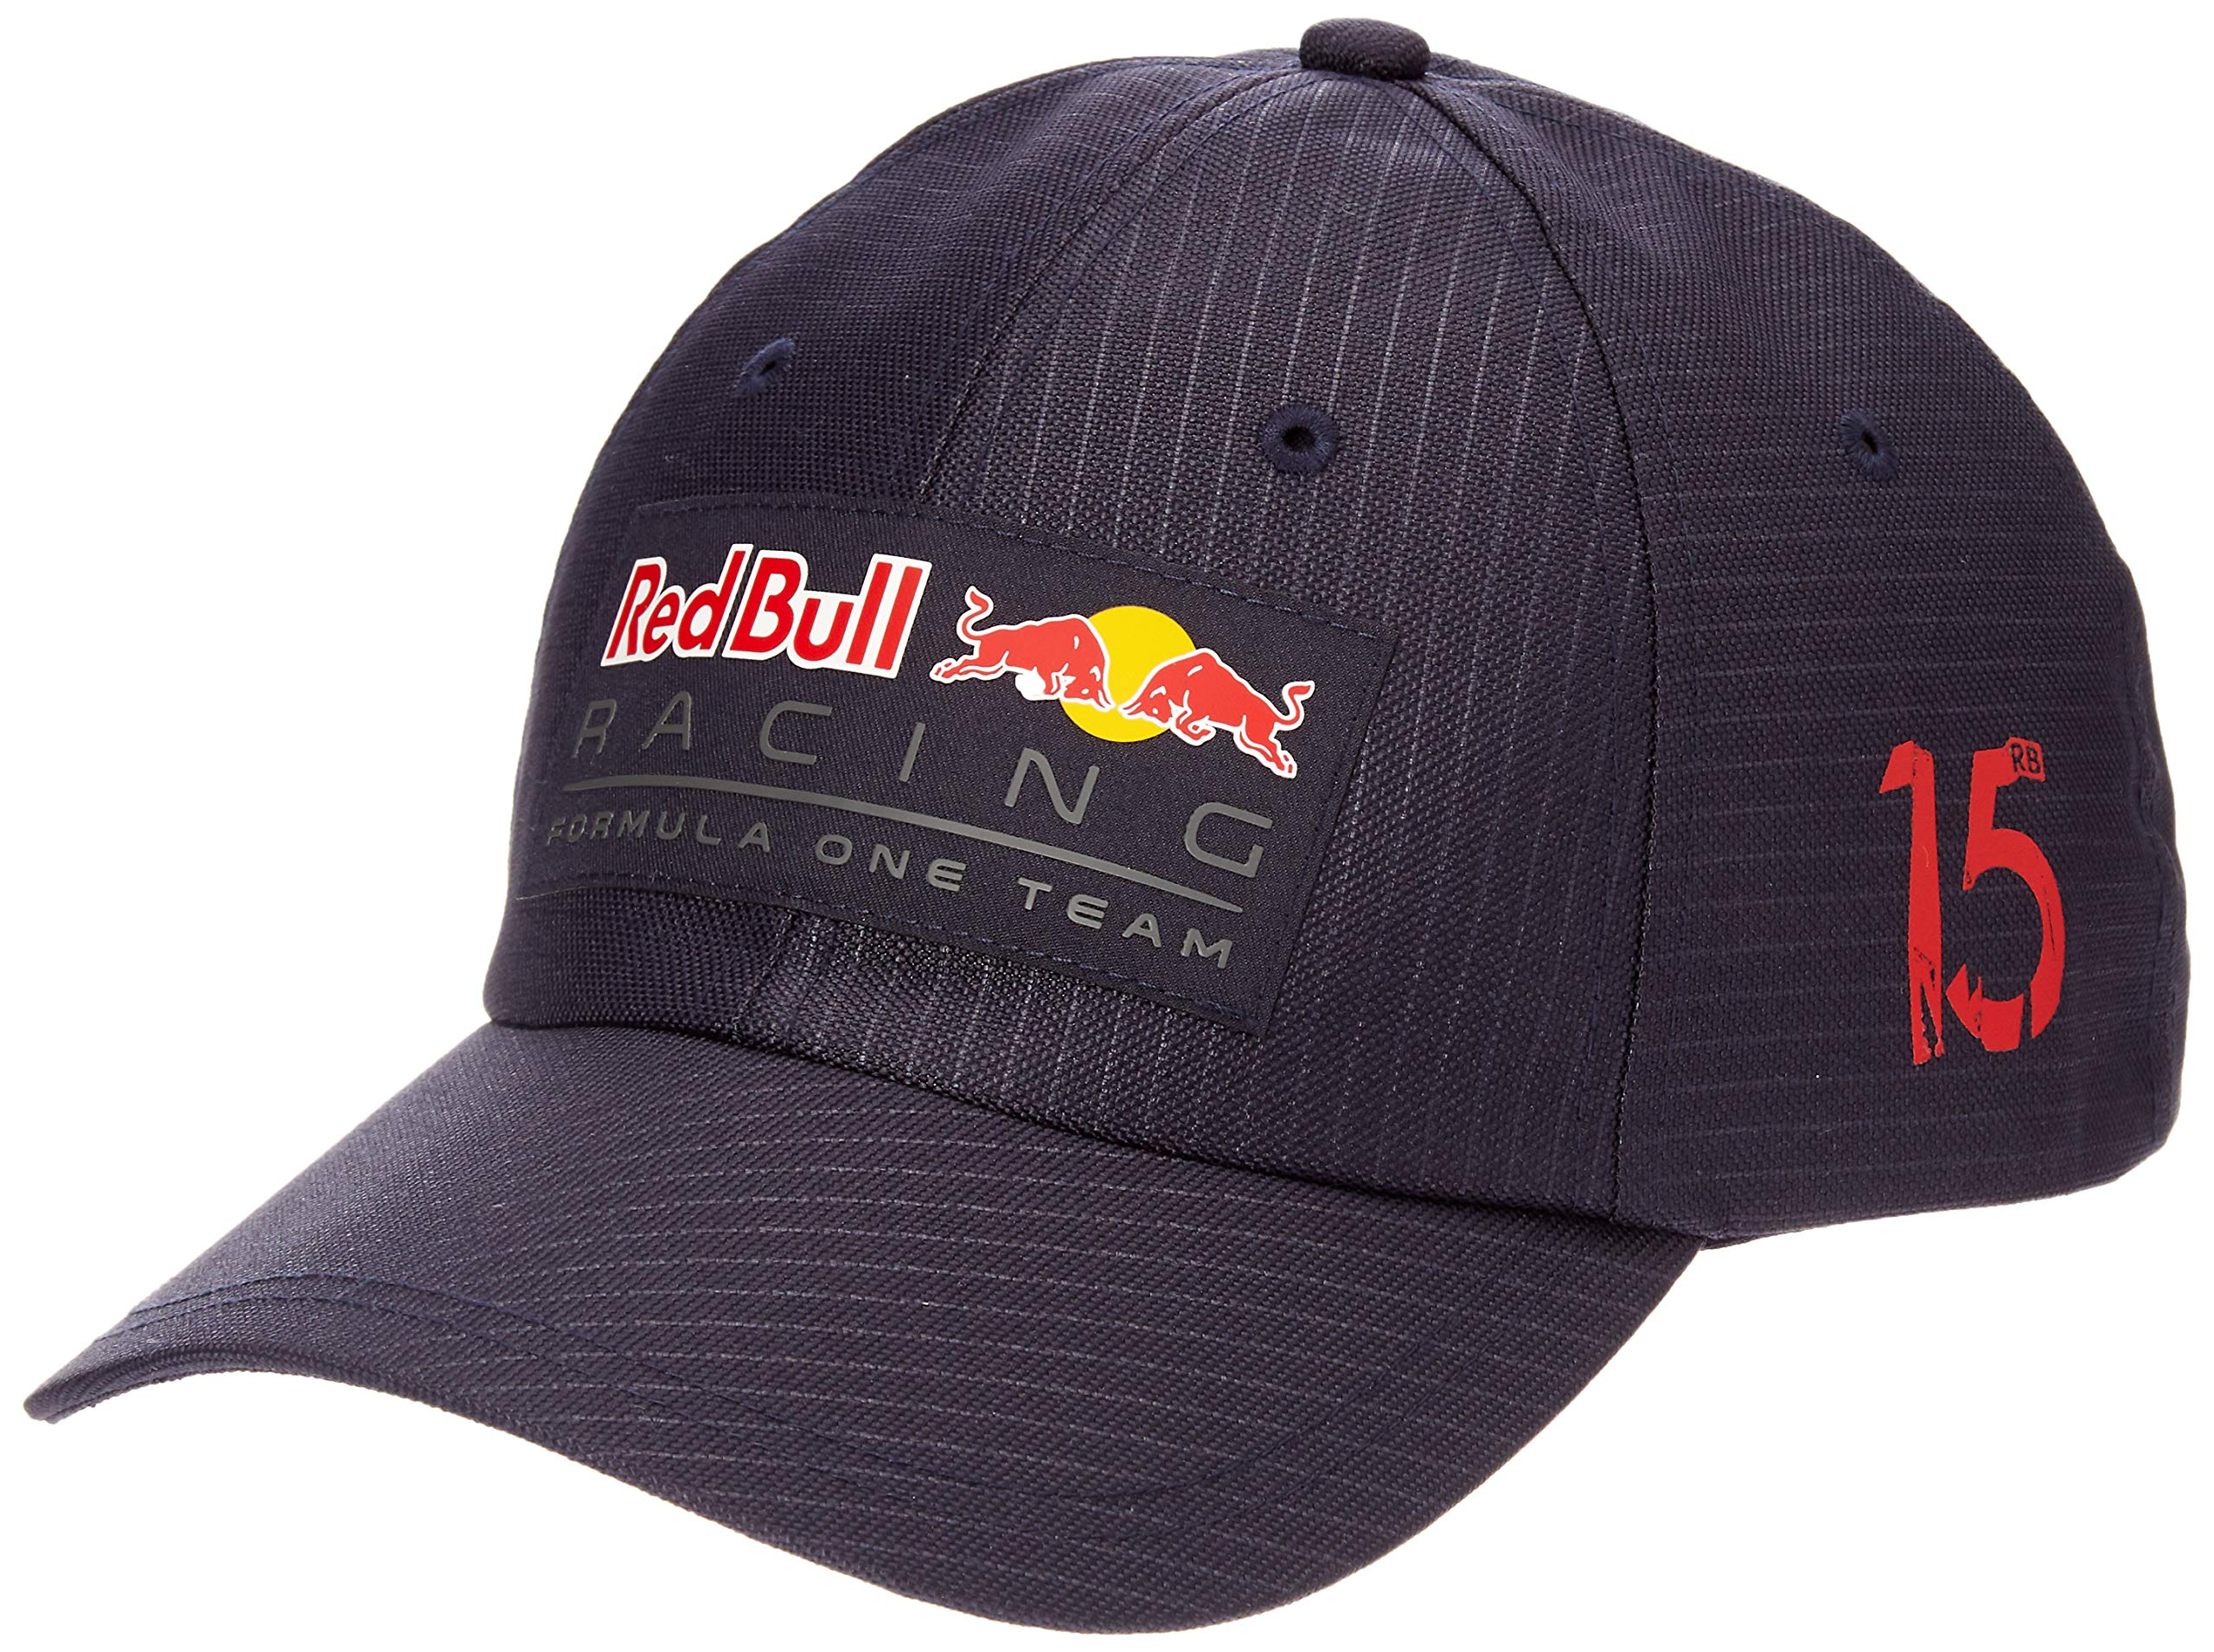 red bull racing aston martin lifestyle stripe cap night. Black Bedroom Furniture Sets. Home Design Ideas